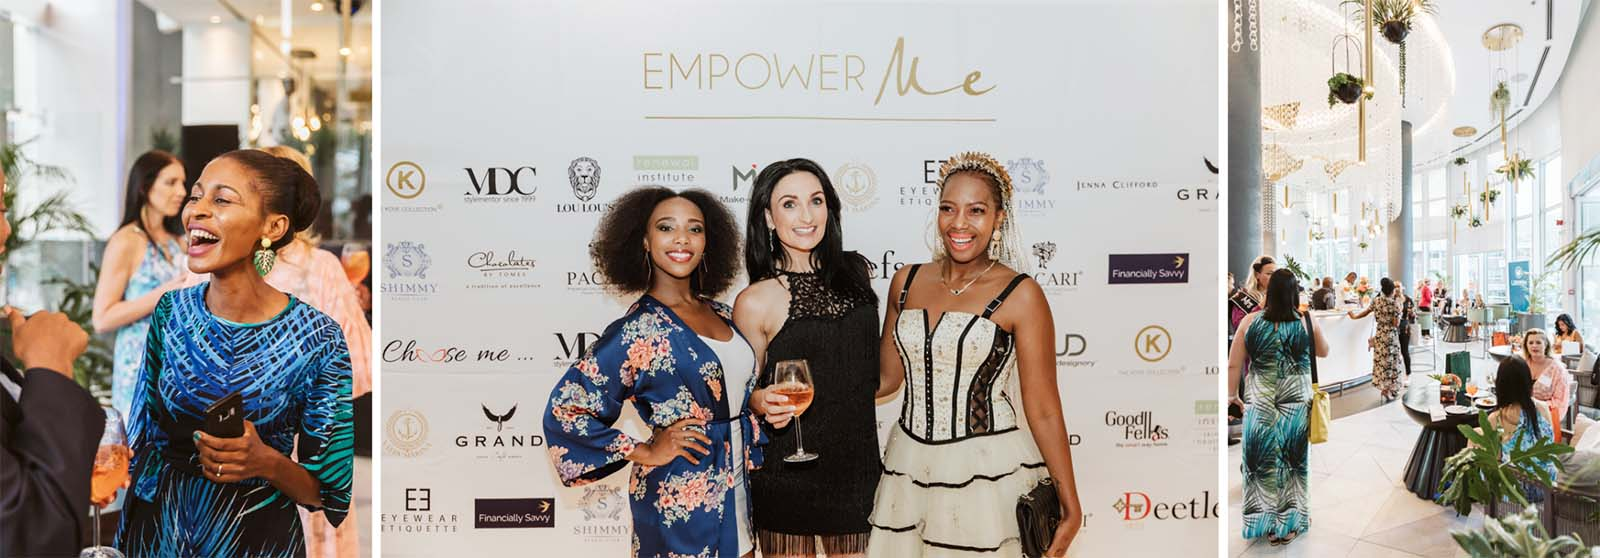 Empower Me offers VIP Club Membership which entitles cardholders to value-ads and discounts from luxury brand affiliates